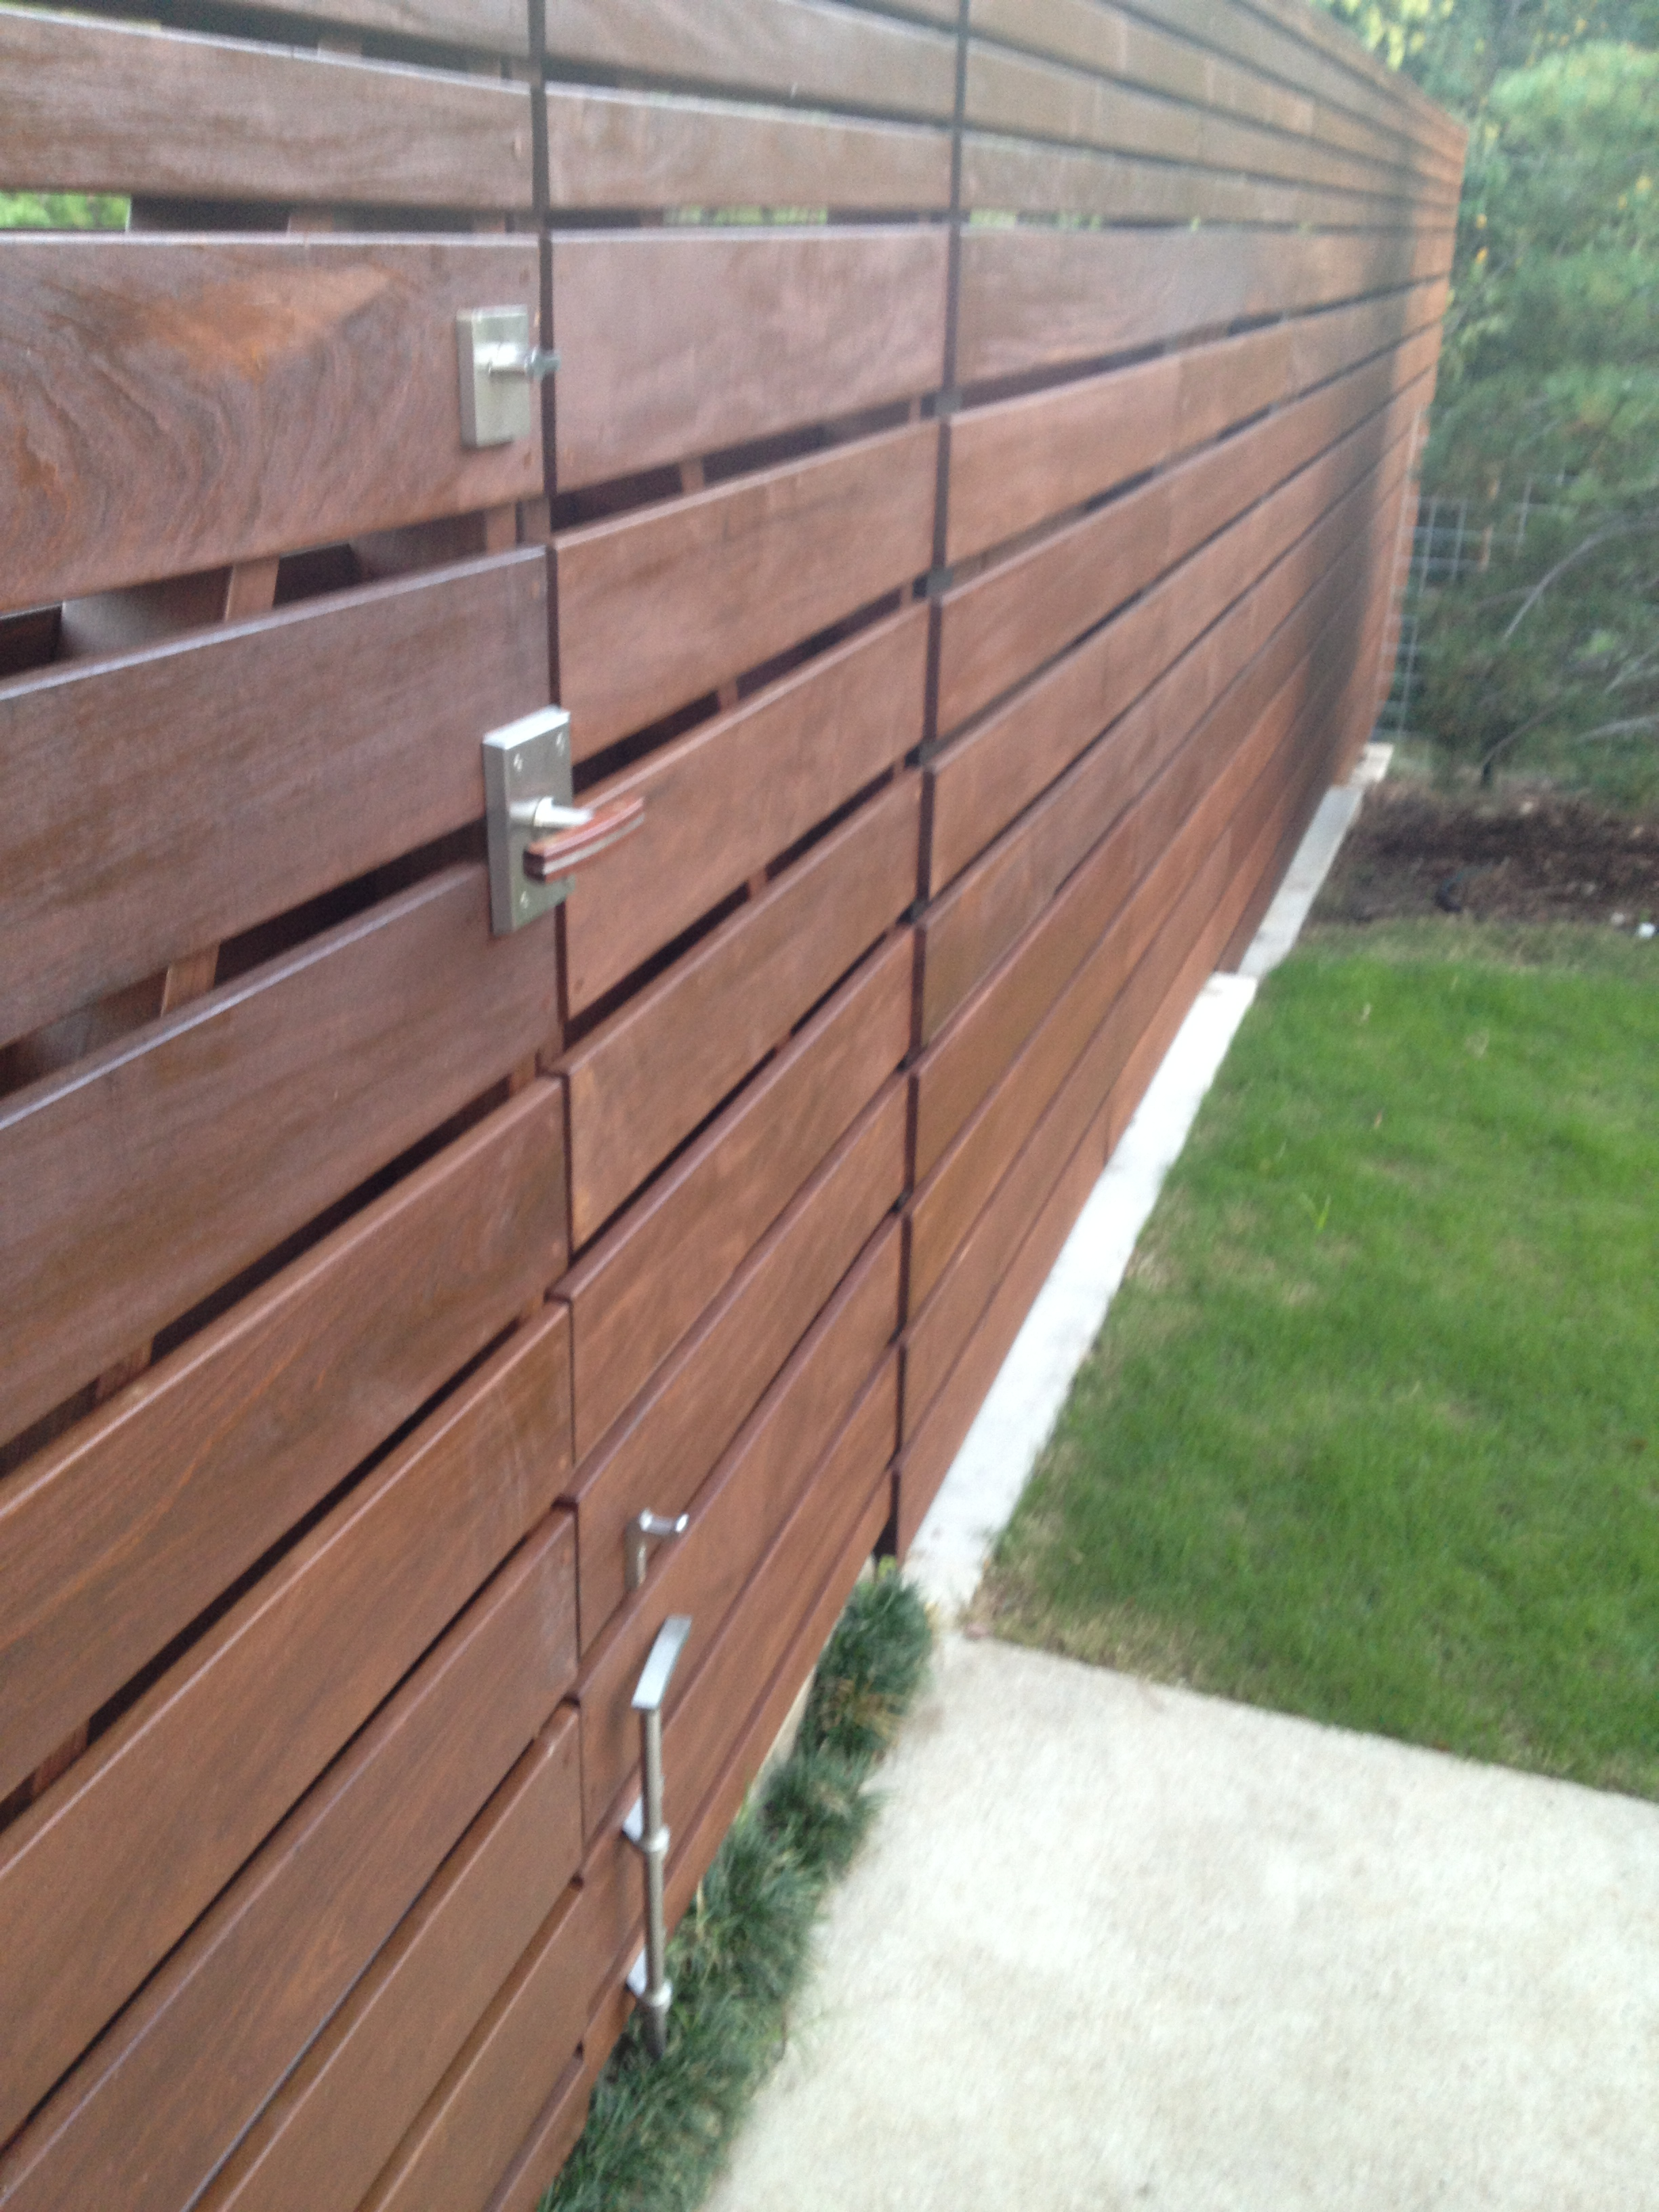 Ipe Horizontal Double Gate and Fence with Moda Gate Latch, Stainless Steel Deadbolt, and Cane Bolt